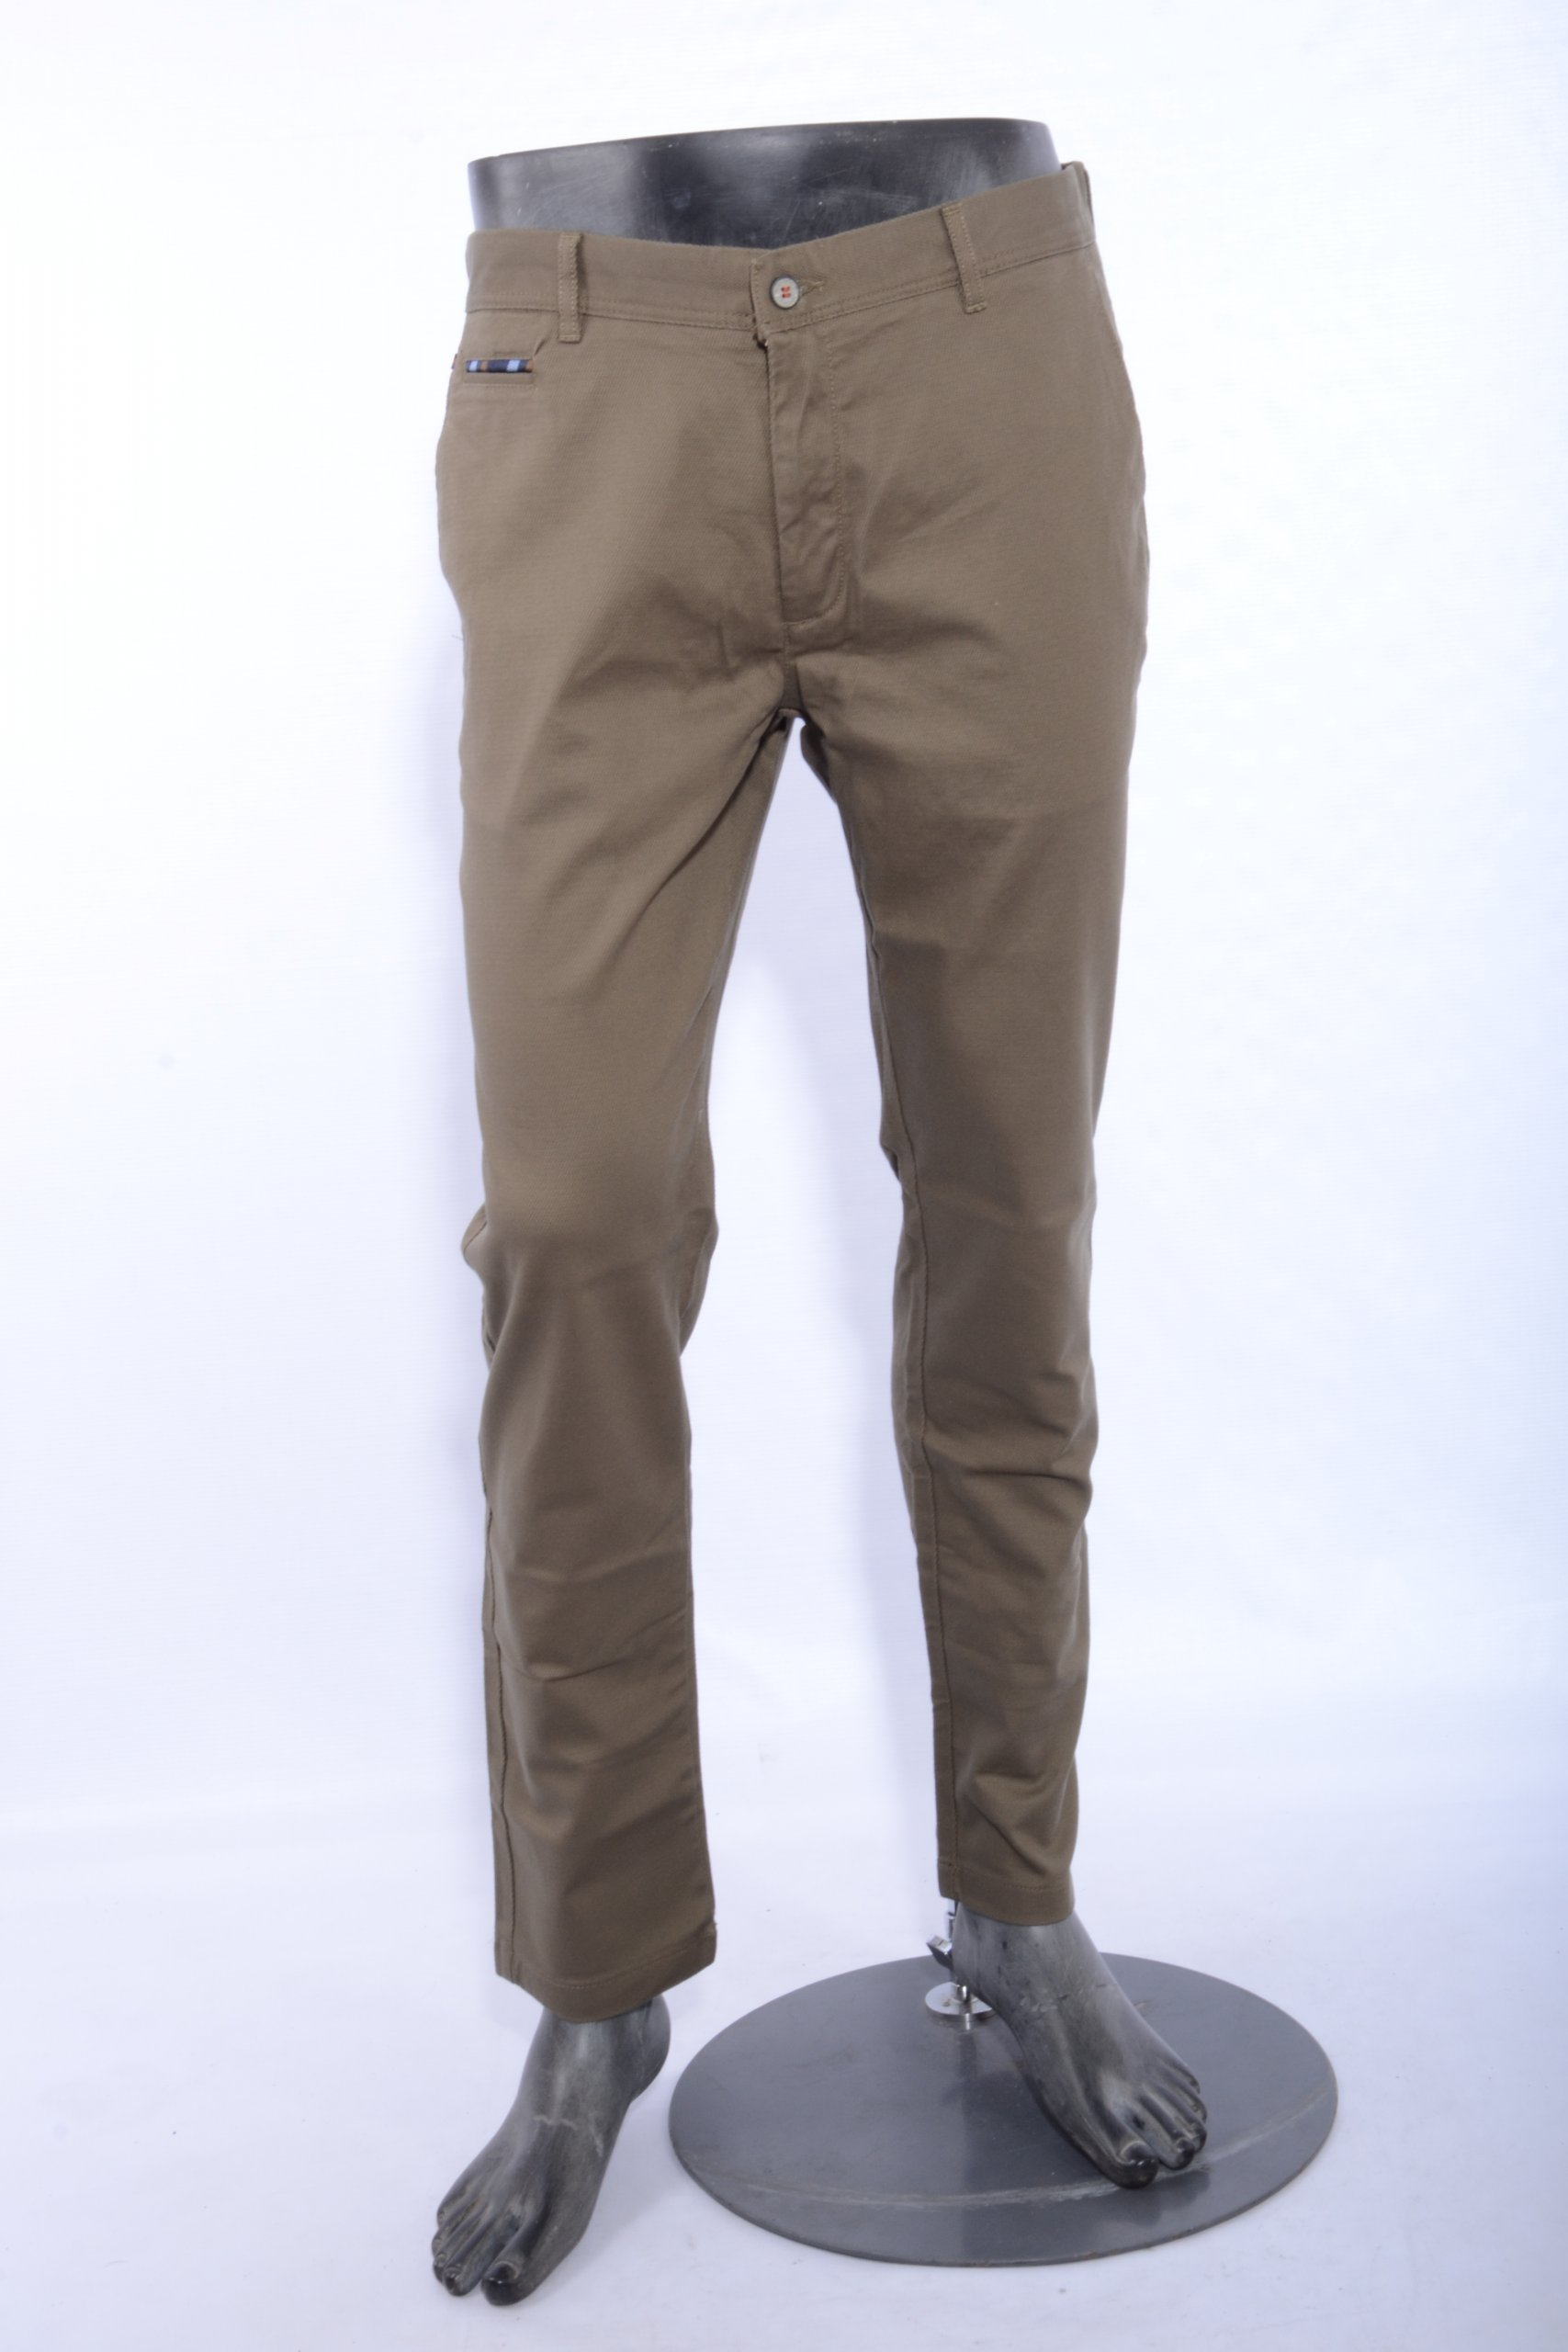 Green Coloured Trouser by Black Berry